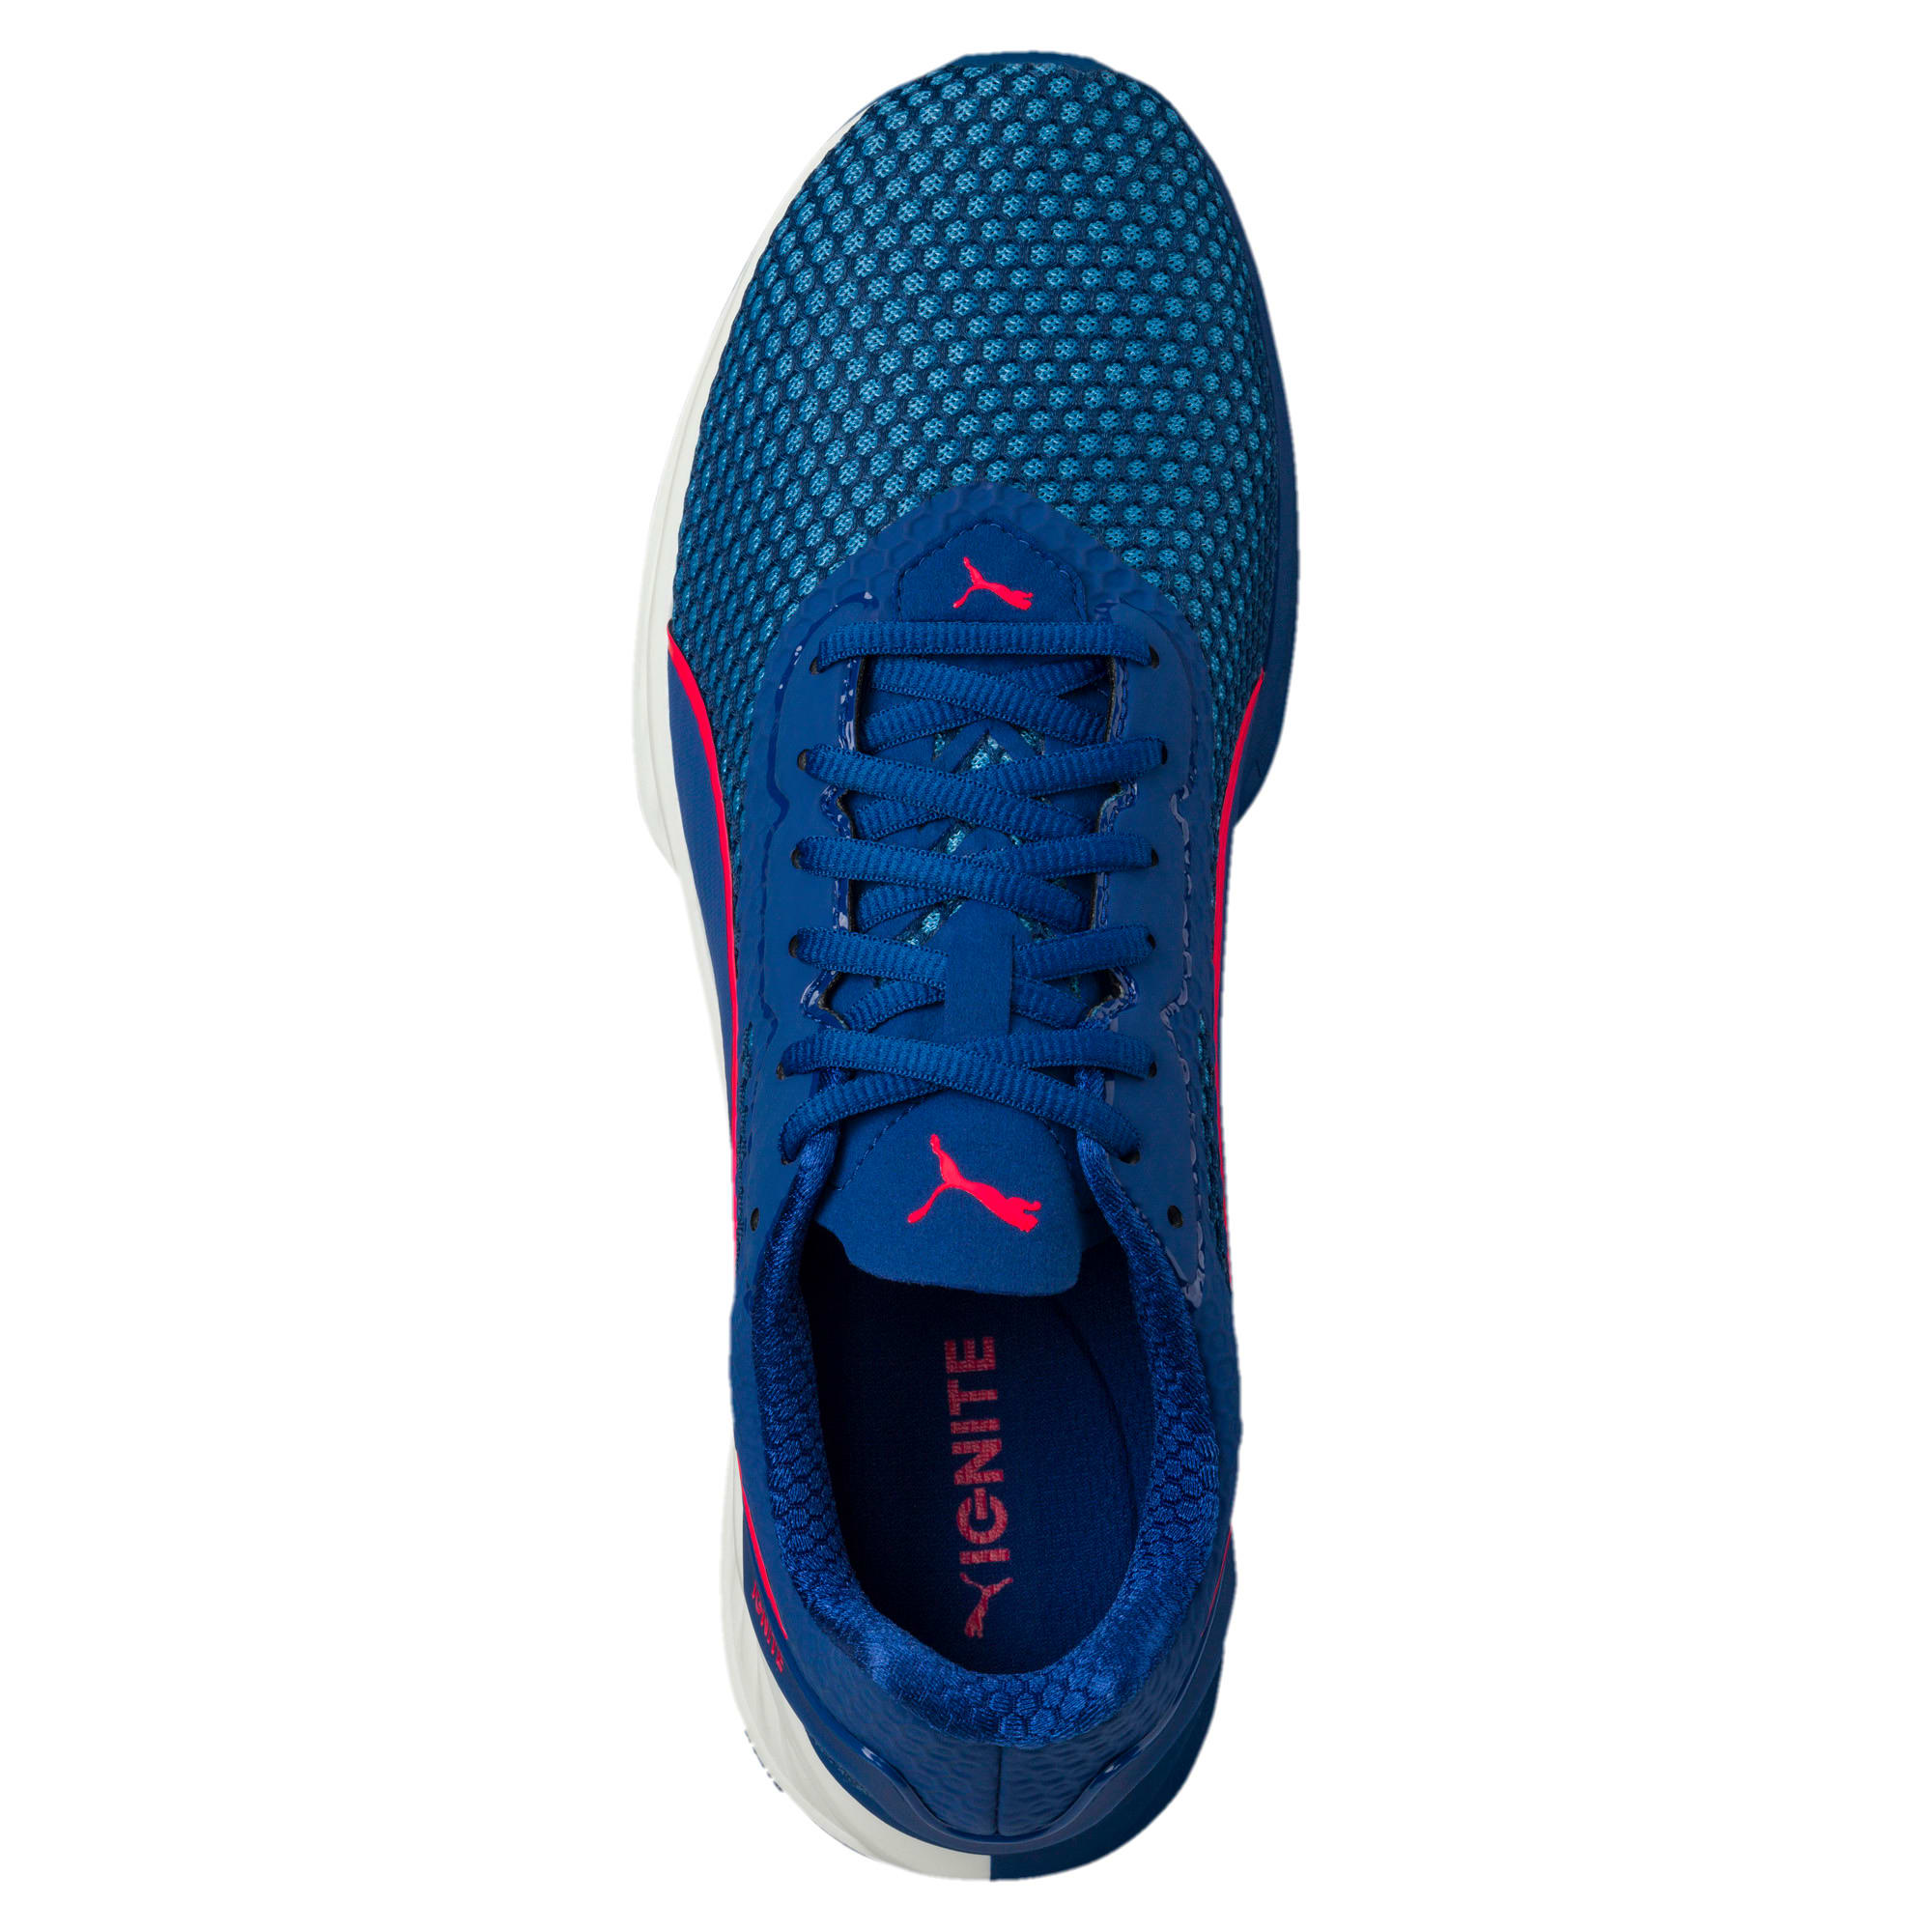 Thumbnail 6 of IGNITE 3 Men's Running Shoes, TRUEBLUE-BLUEDANUBE-Plasma, medium-IND